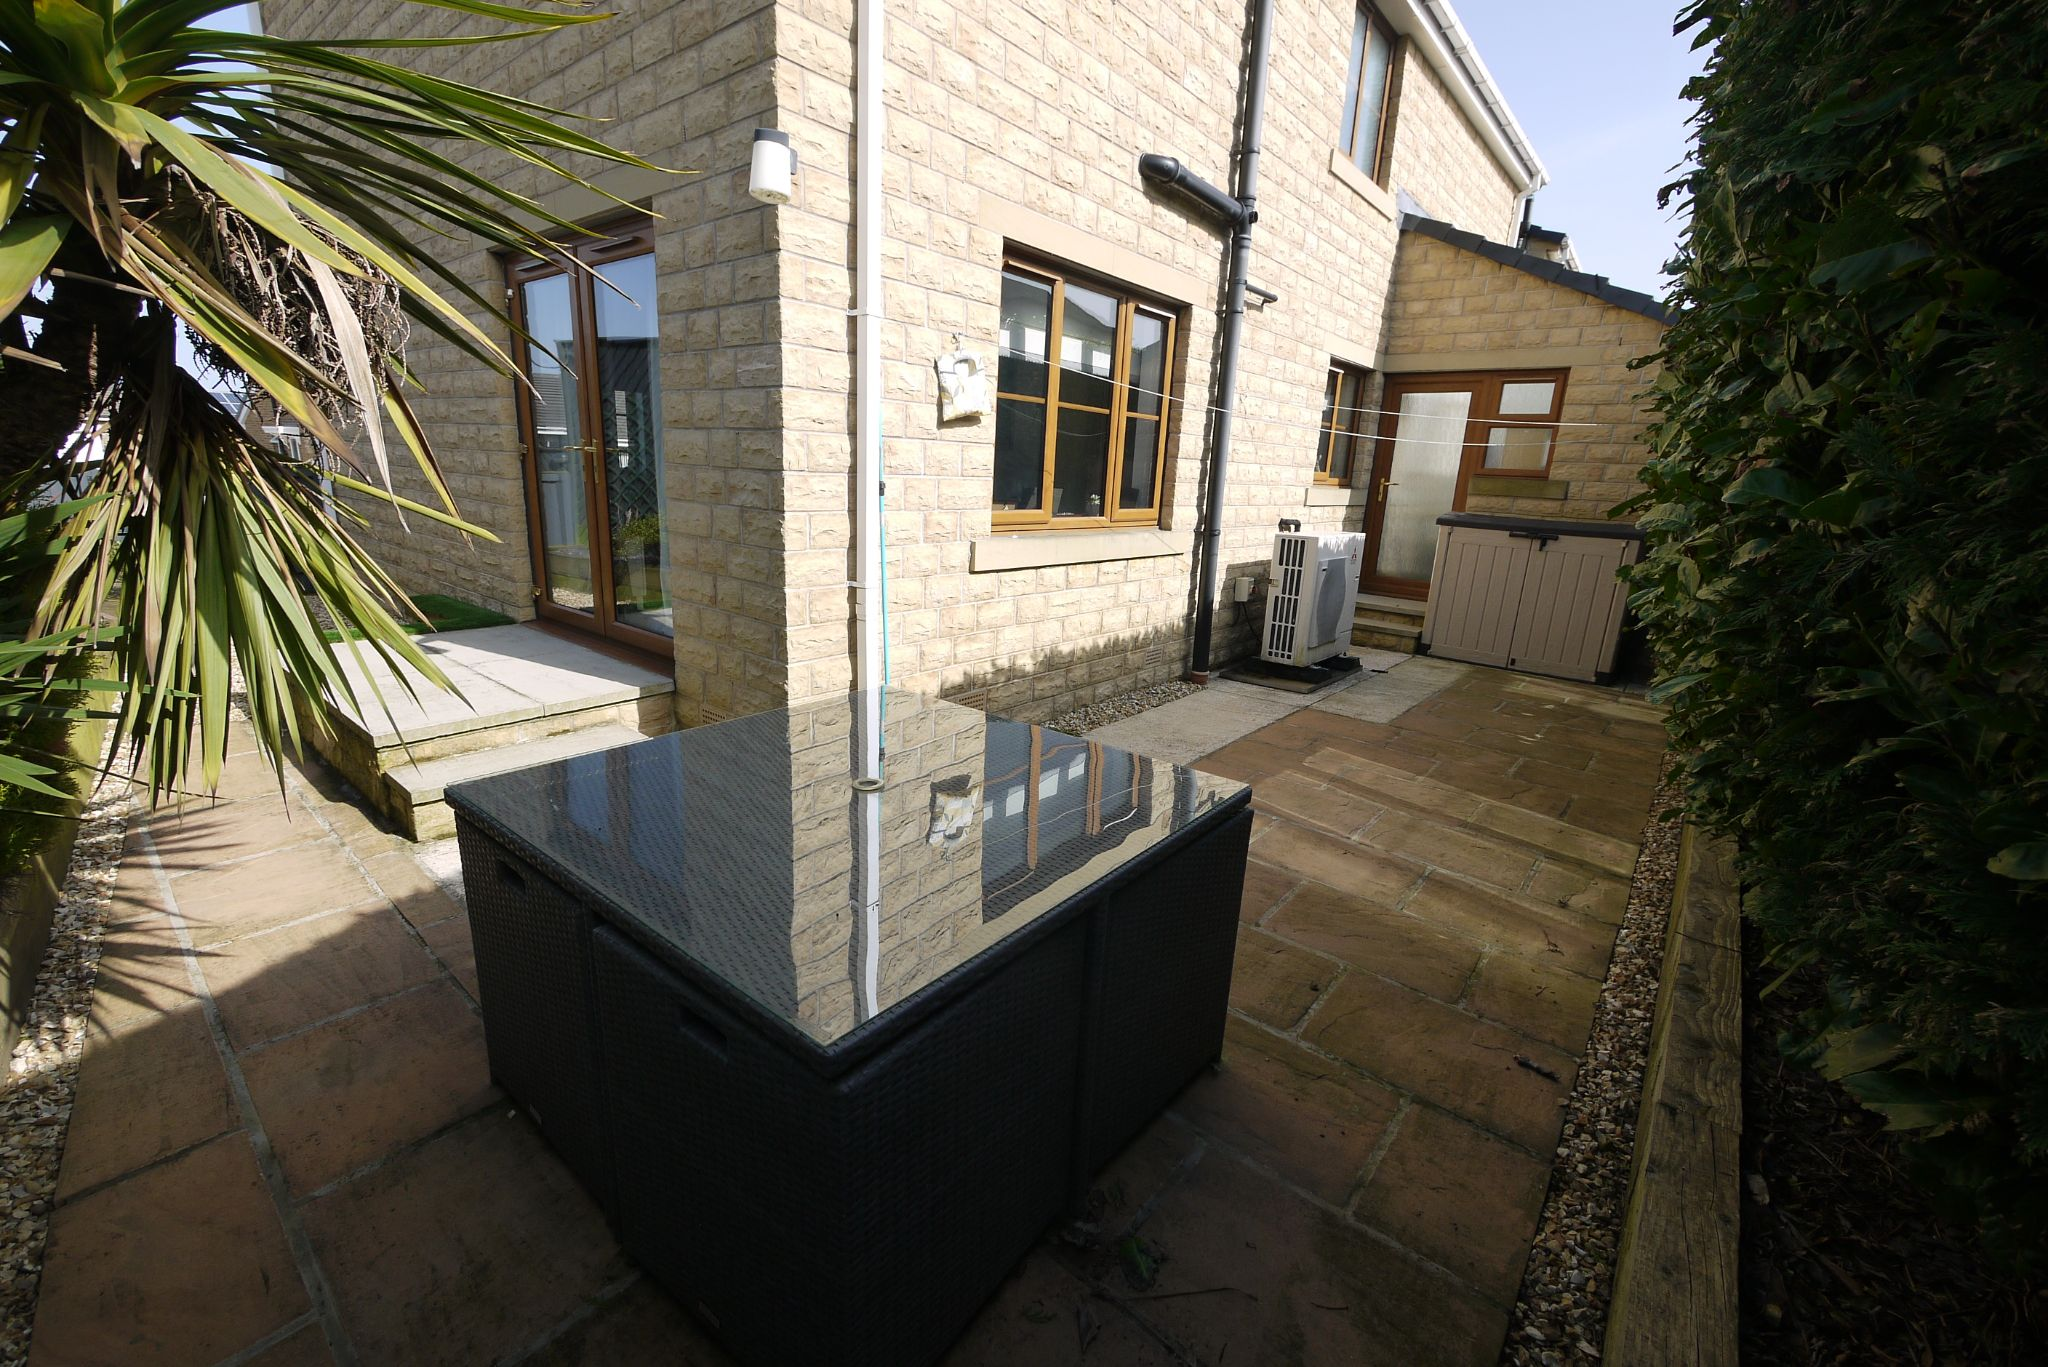 4 bedroom detached house SSTC in Brighouse - Side garden 2.